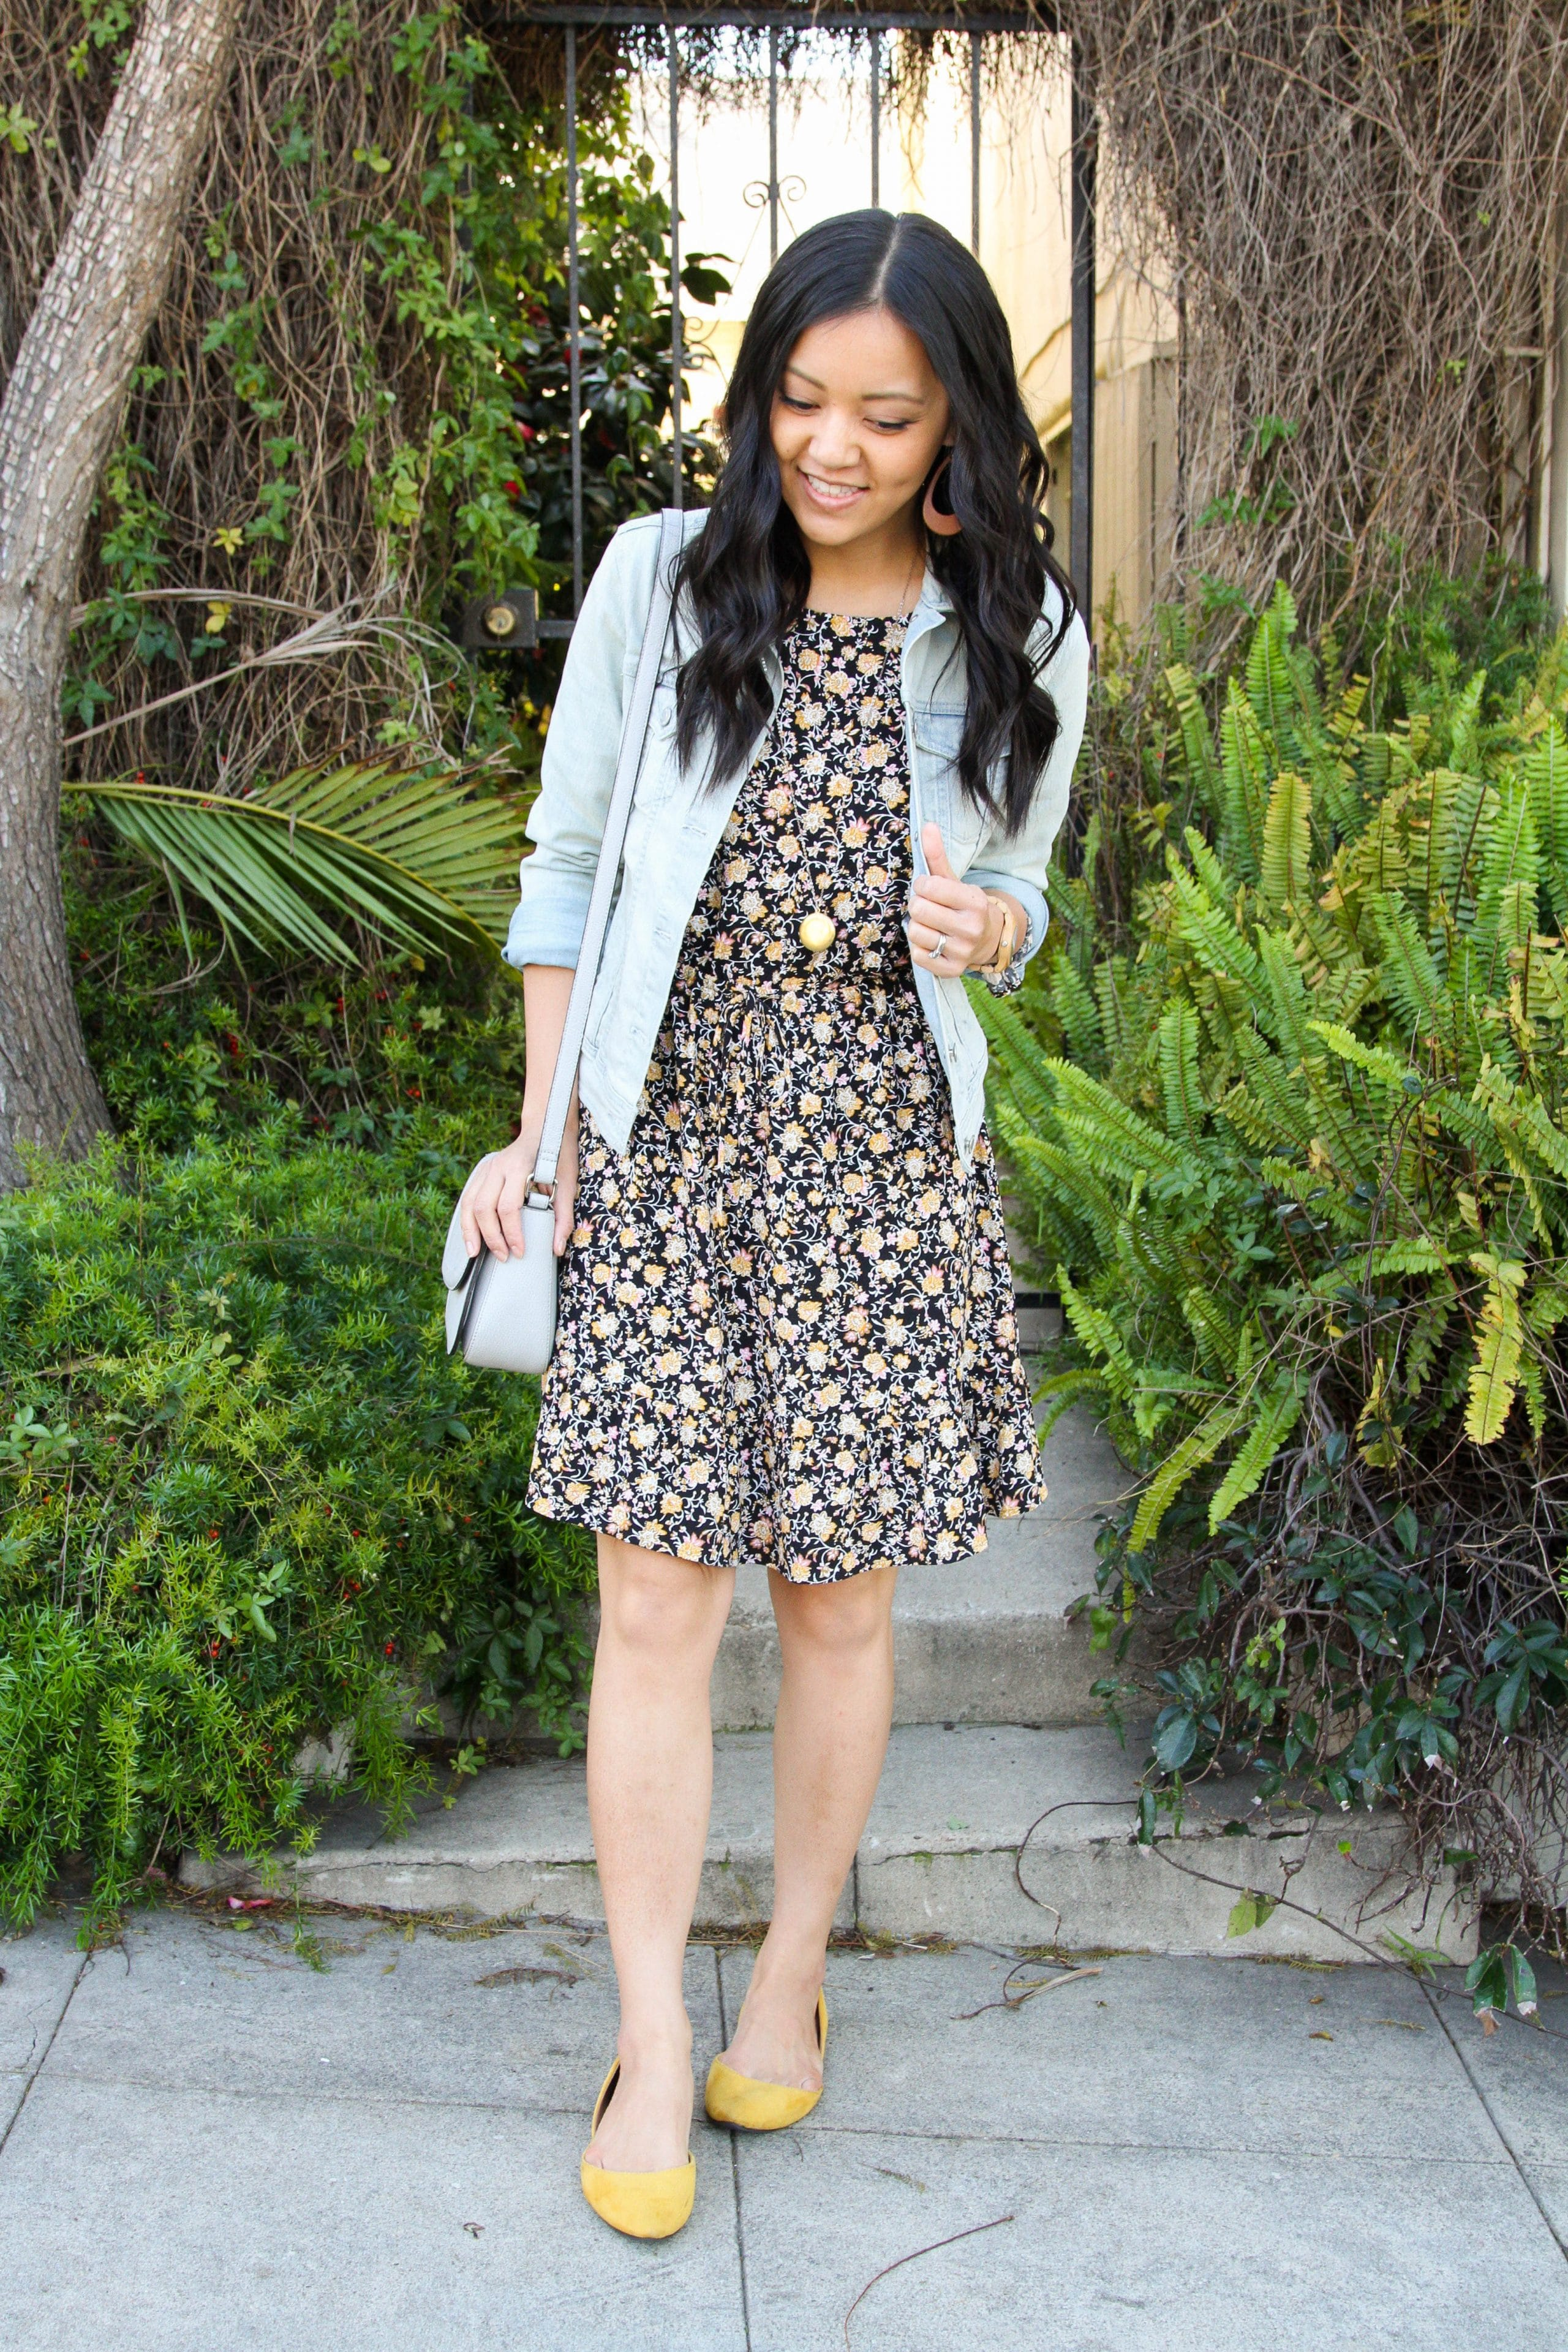 Black Floral Dress + Denim Jacket + Yellow Flats + Grey Crossbody Bag